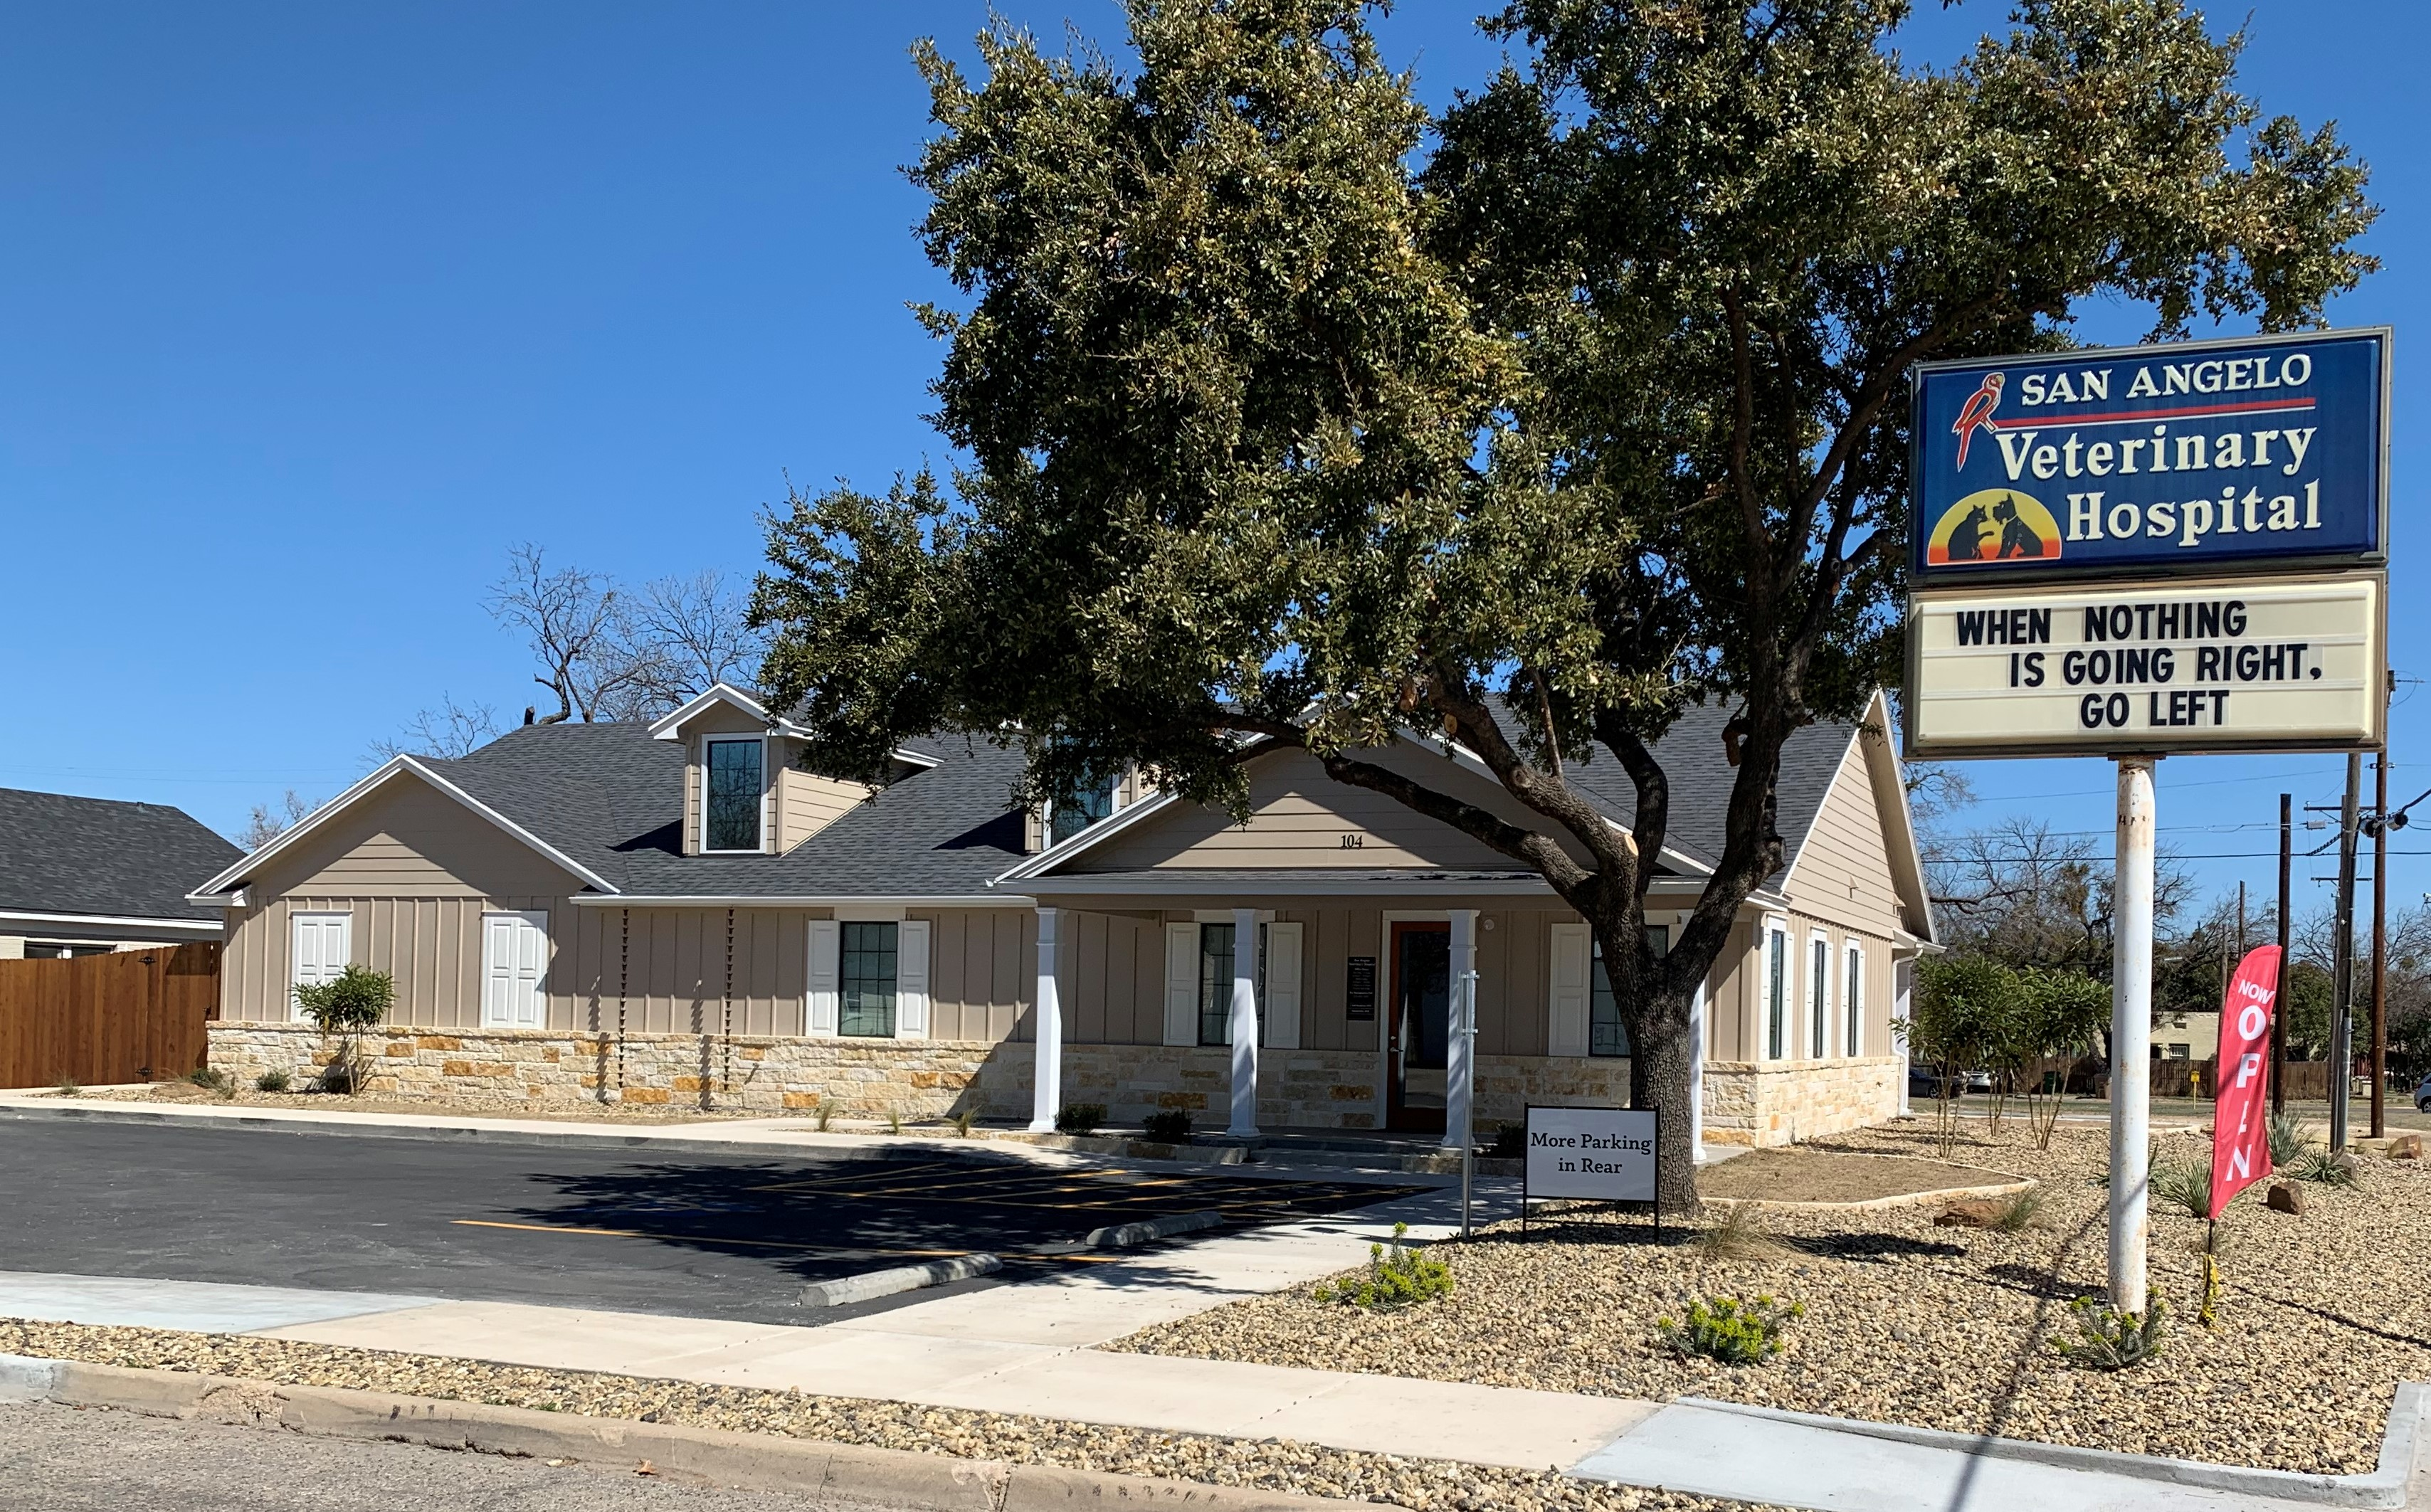 San Angelo Veterinary Hospital